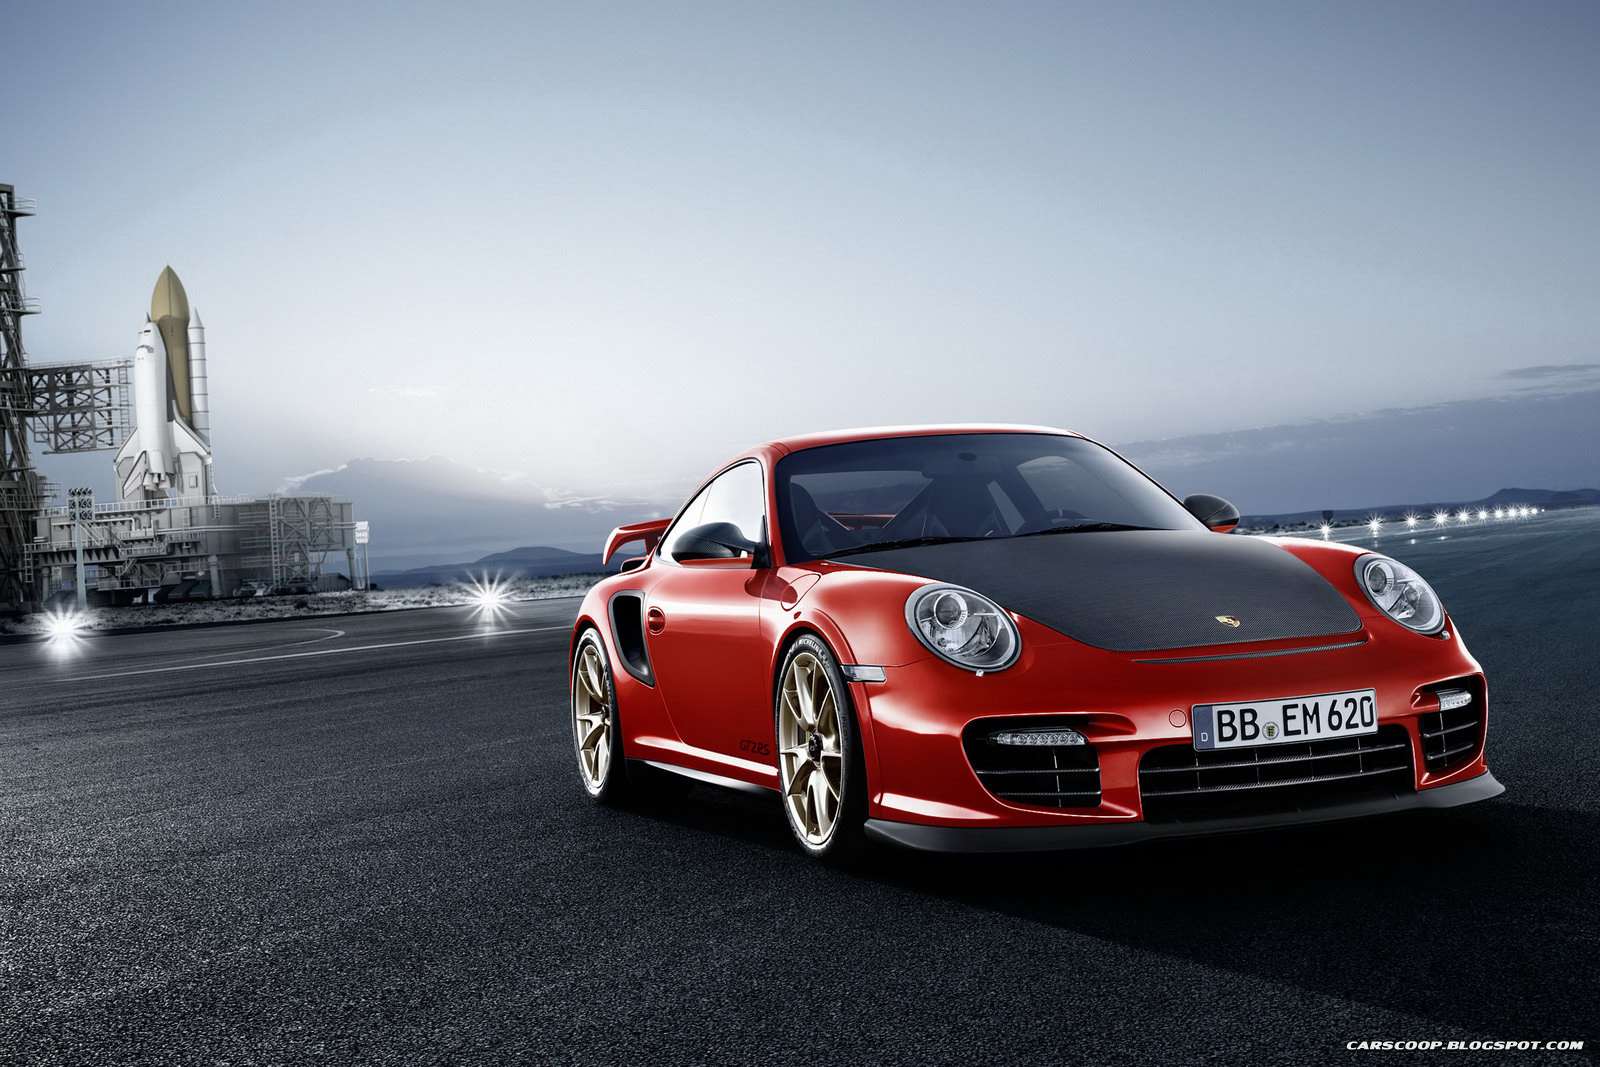 Free Download Porsche 911 Gt2 Rs Wallpaper 1600x1067 For Your